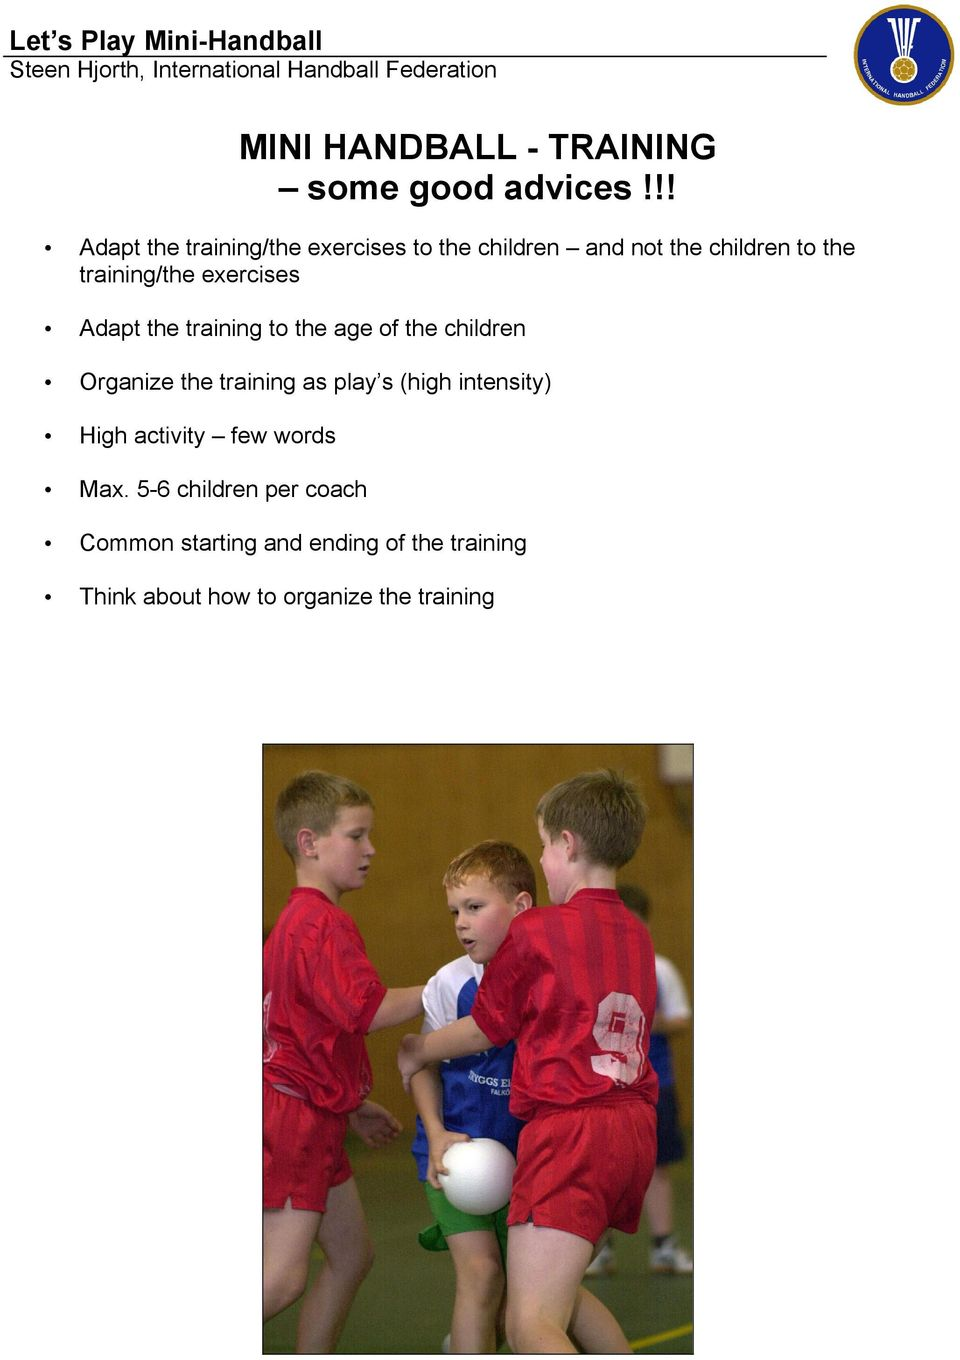 exercises Adapt the training to the age of the children Organize the training as play s (high